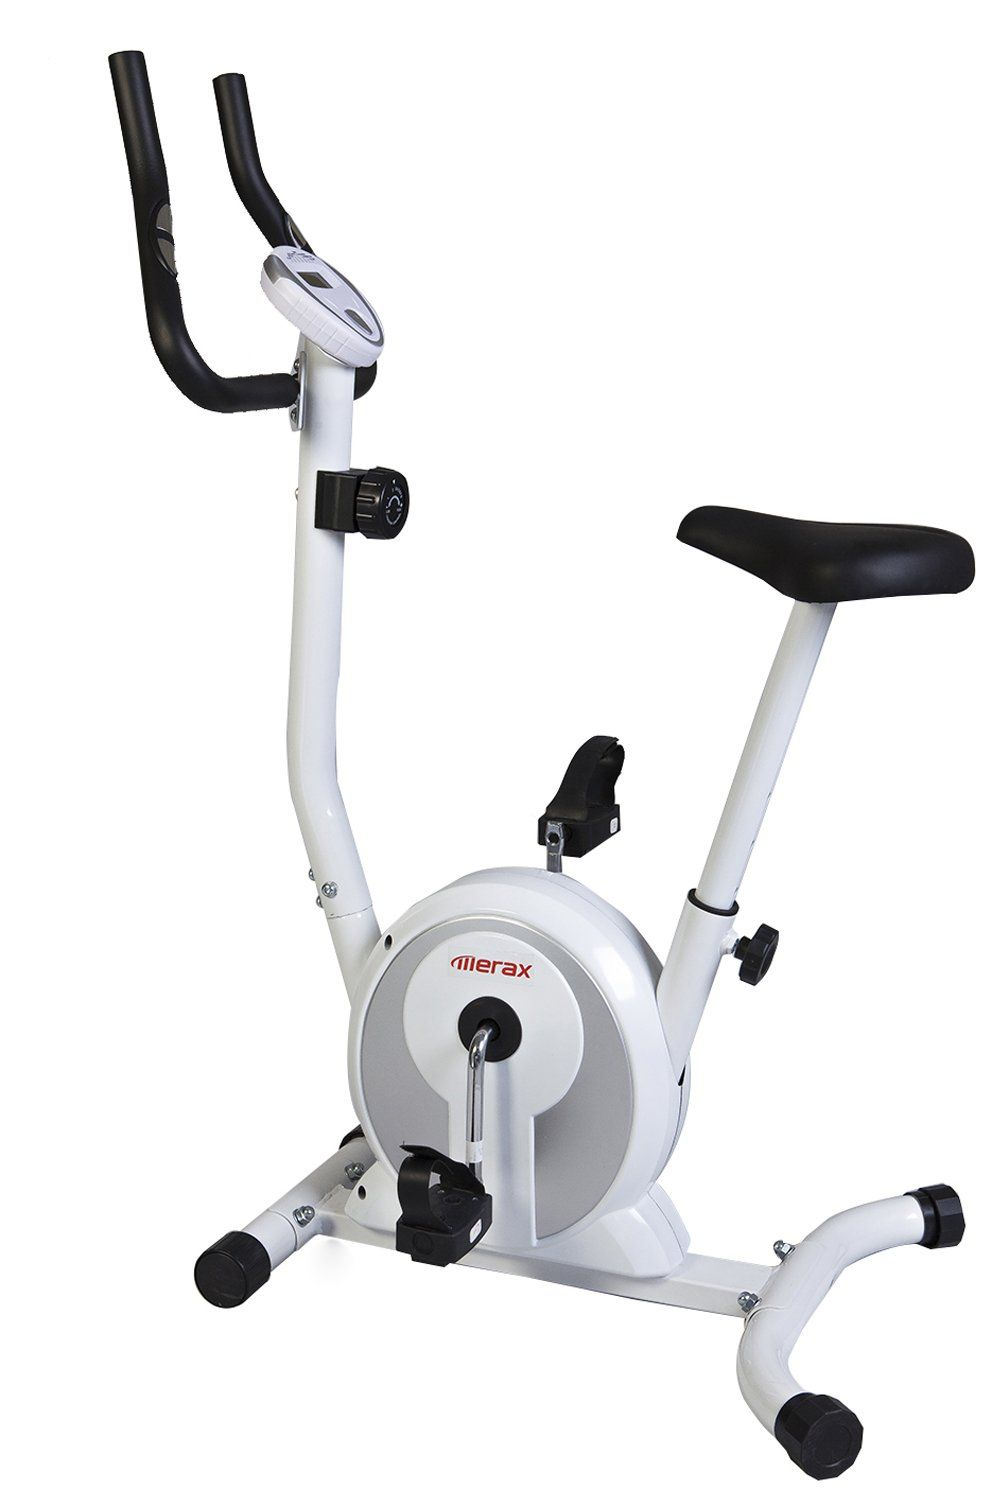 Merax Magnetic Upright Exercise Bike Sports Outdoors Upright Exercise Bike Exercise Bikes Biking Workout